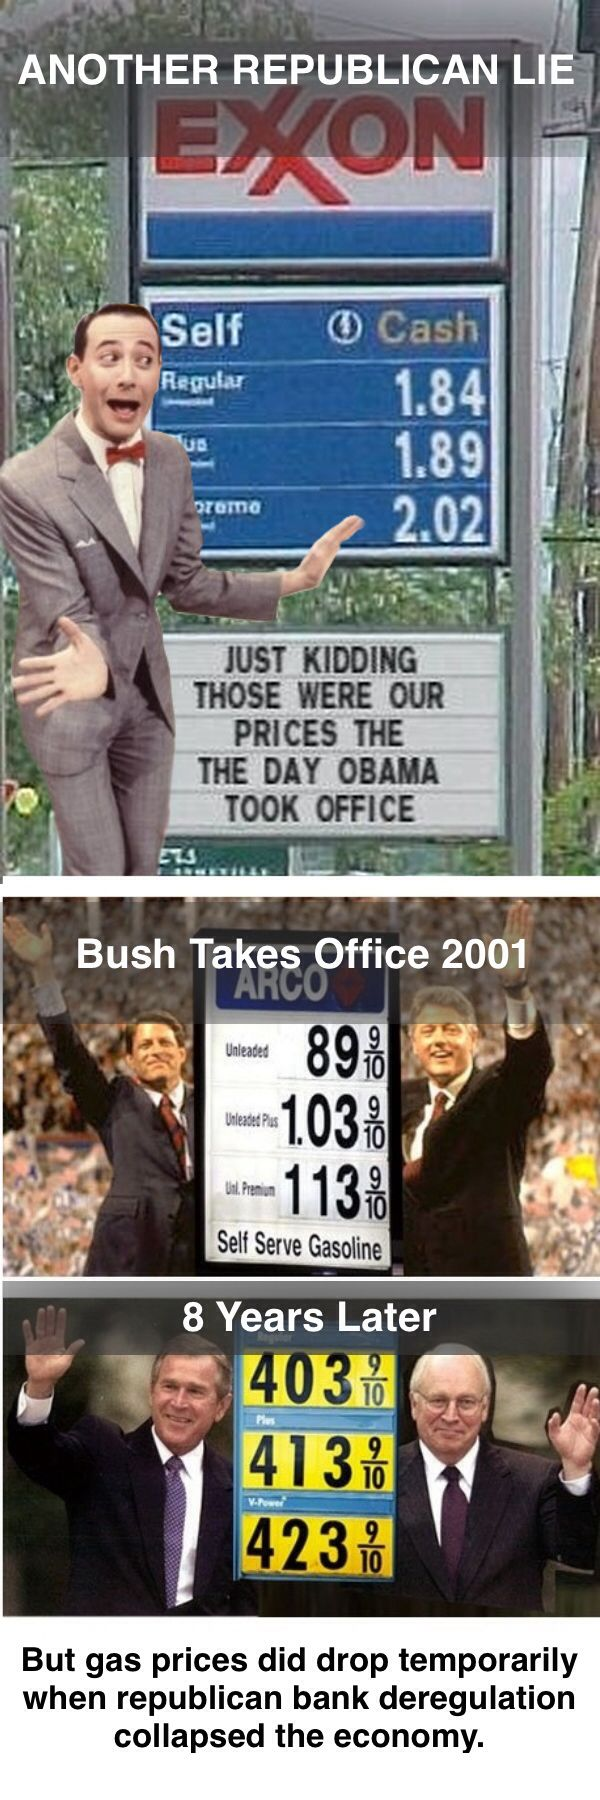 Highest recorded gas prices during Bush admin 2008. The lies and distortions just keep being generated by the Koch machine and idiot republicans keep believing them.